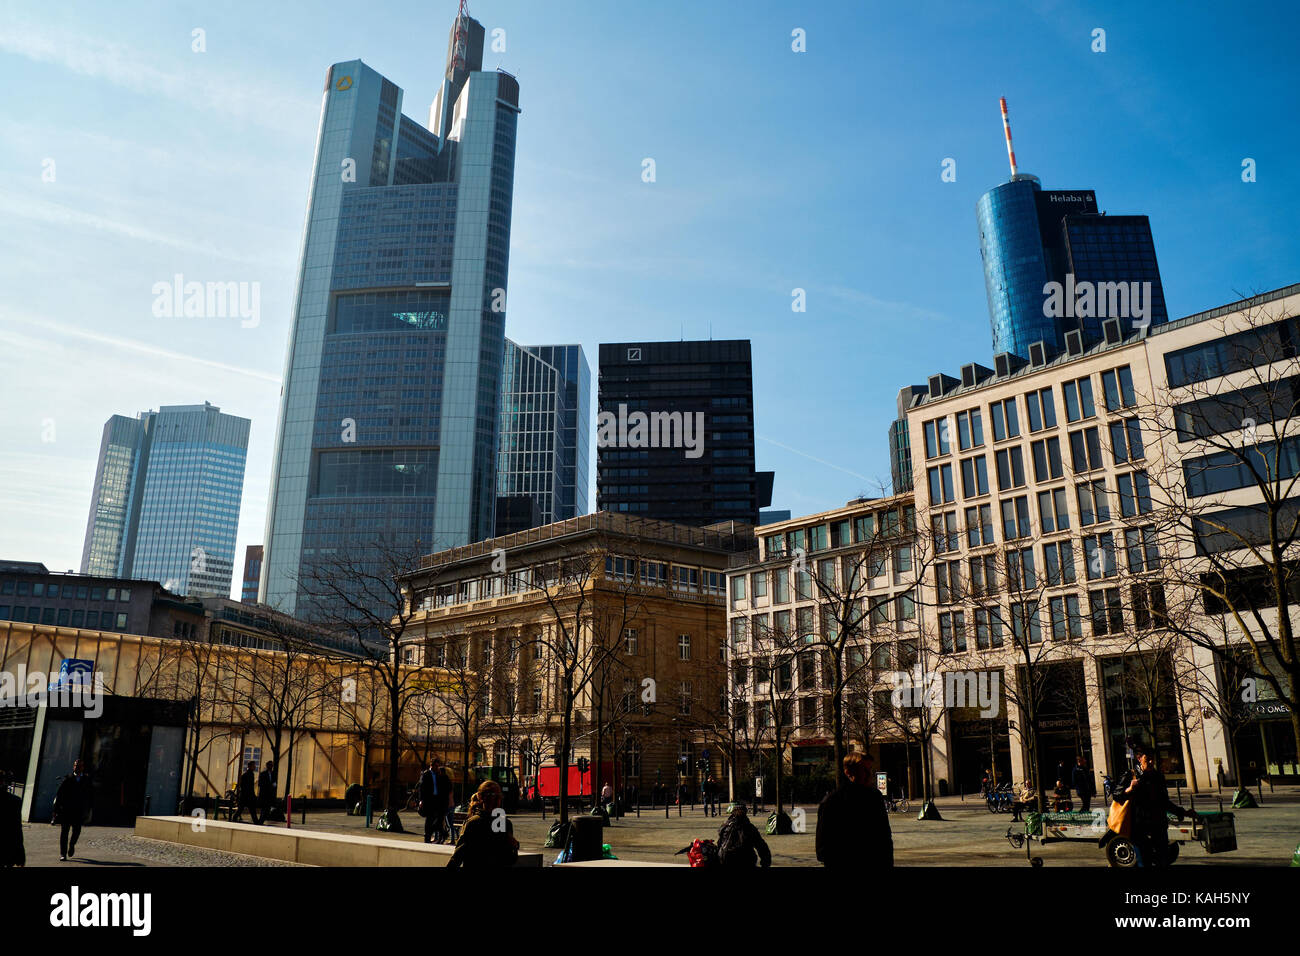 Frankfurt am Main, Germany - March 16, 2017: Goetheplatz with walking people, old buildings and modern skyscrapers Stock Photo